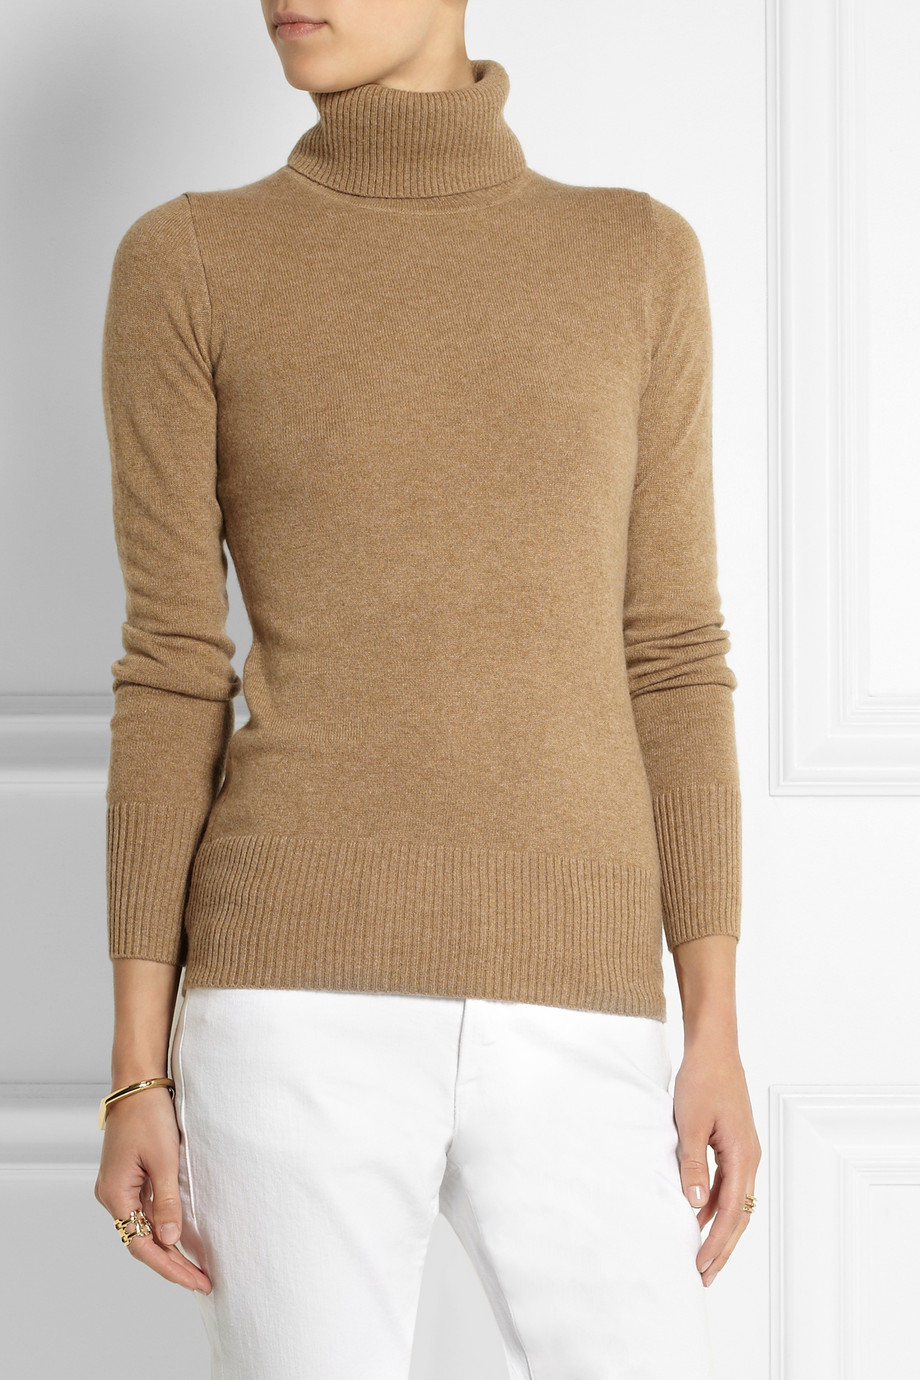 Lyst - J.Crew Cashmere Turtleneck Sweater in Blue 81bbcc547bf8